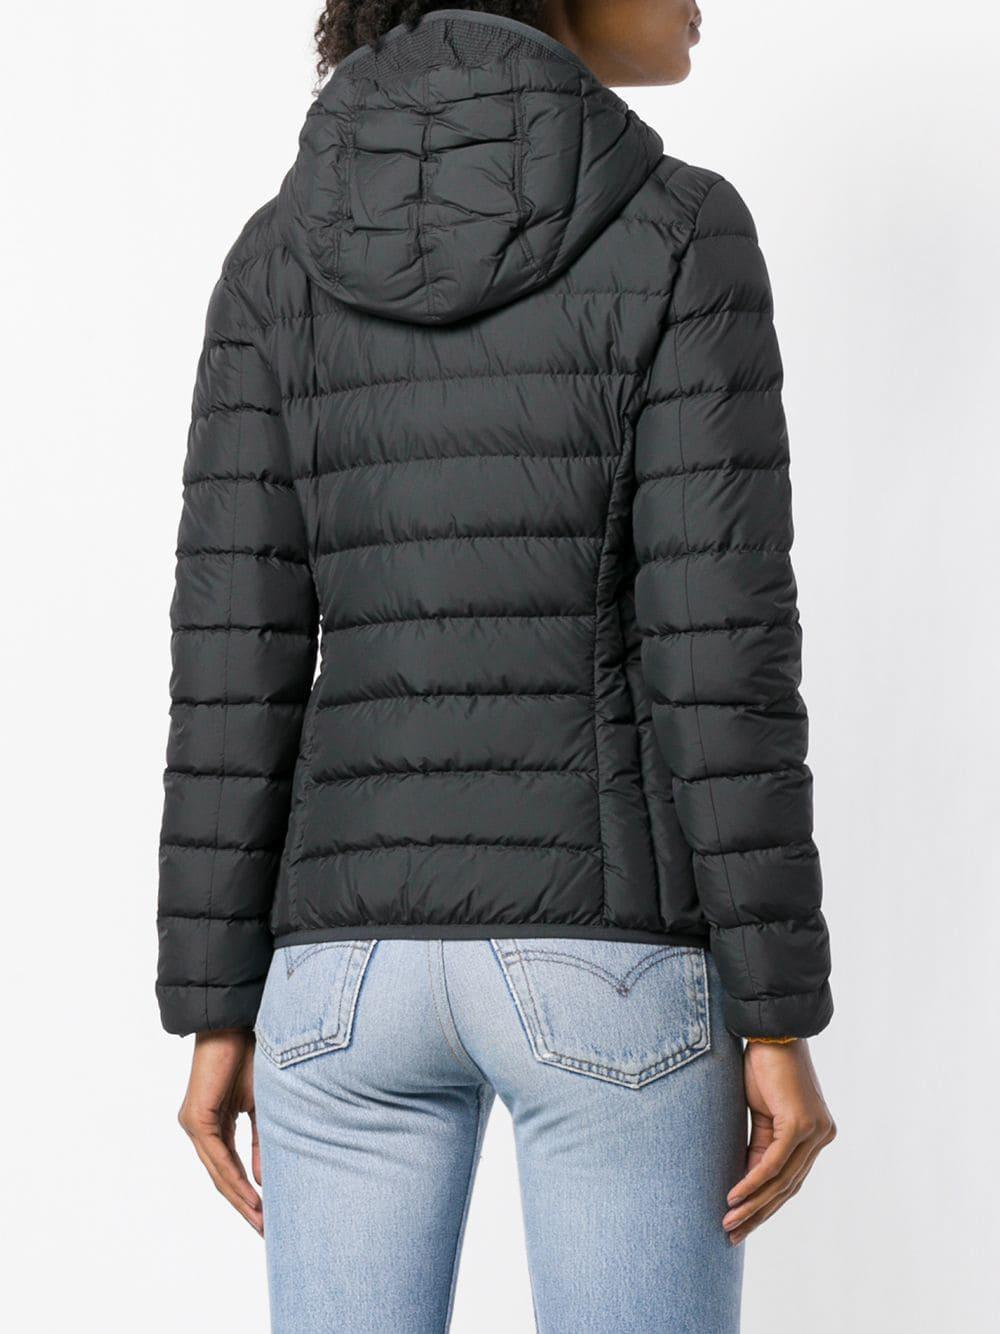 Parajumpers - Black Hooded Puffer Jacket - Lyst. View fullscreen